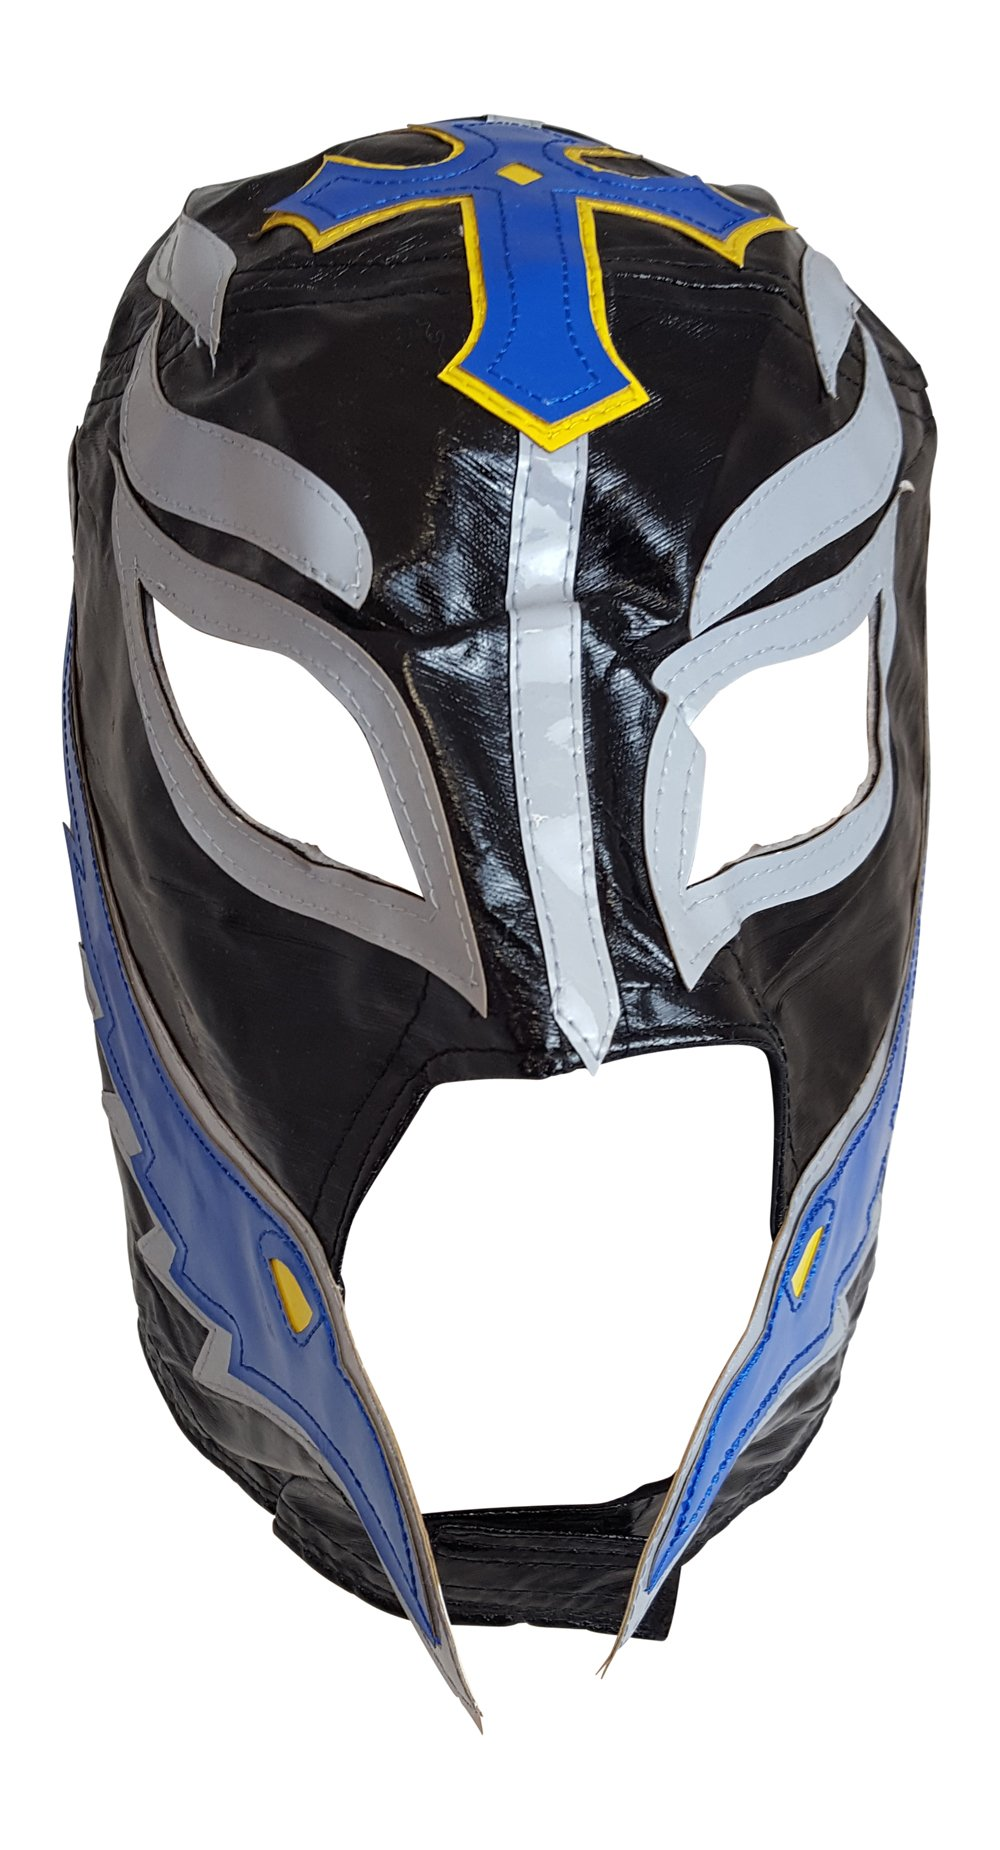 Lucha Libre Mask Adult Size Black Blue and Yellow Pro Wrestling by Extreme Wrestling Shirts